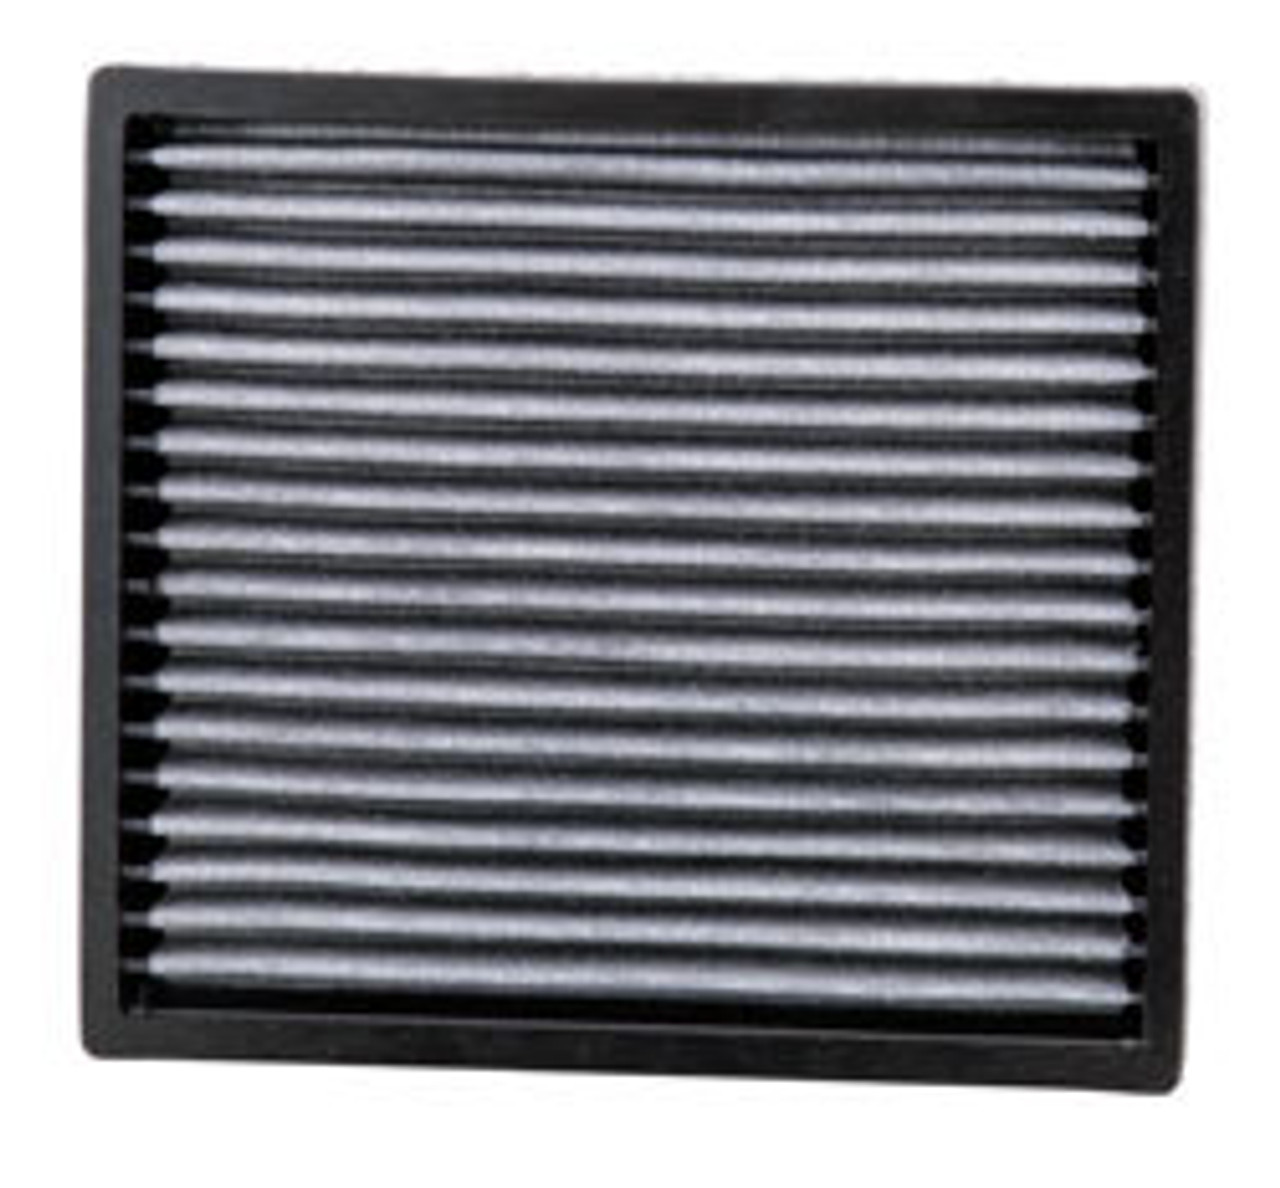 Unifilter Replacement Filter fits Rover UC140 60S//2 fits ROVER 2000-3500 P6 1...